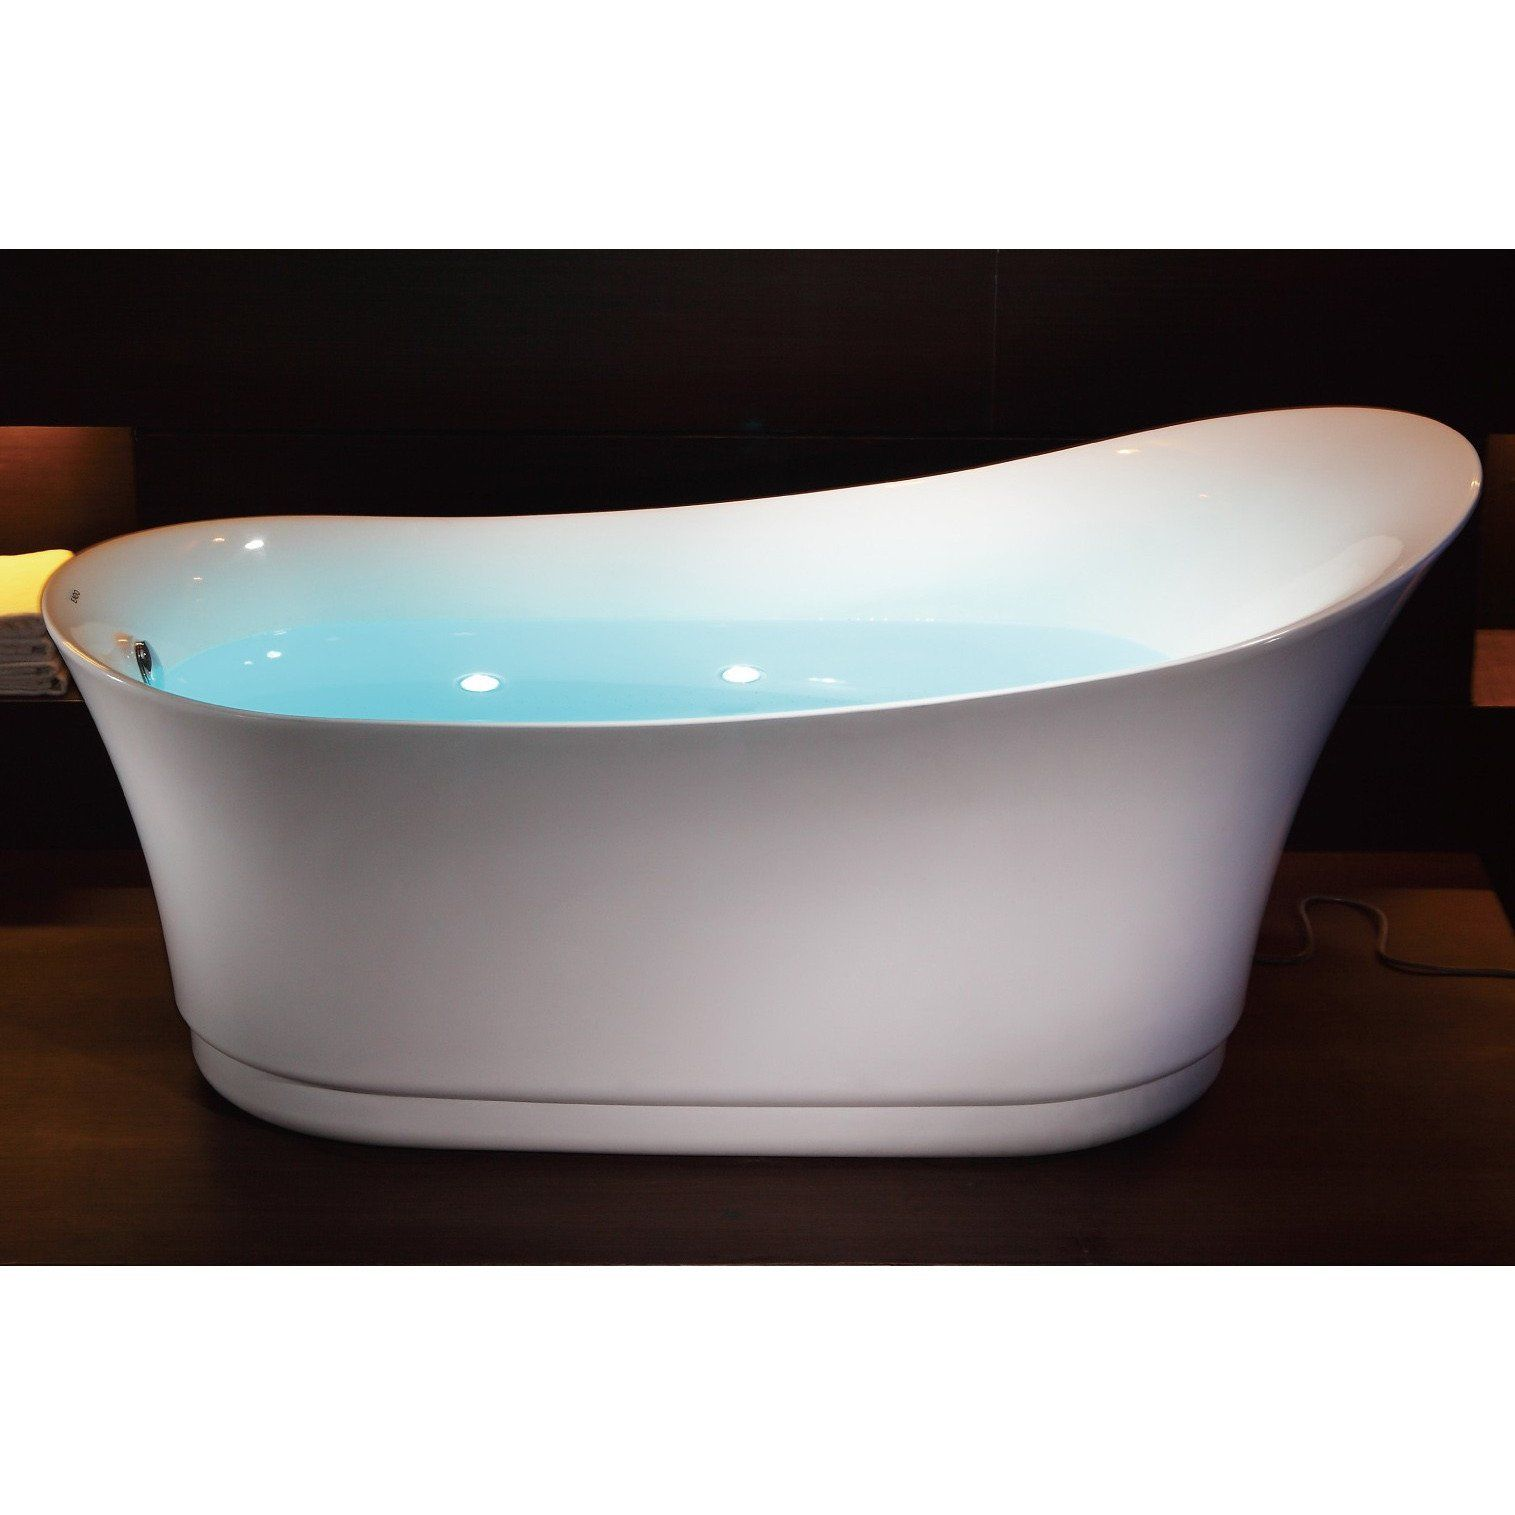 6 Jet Bath Tub With Motor